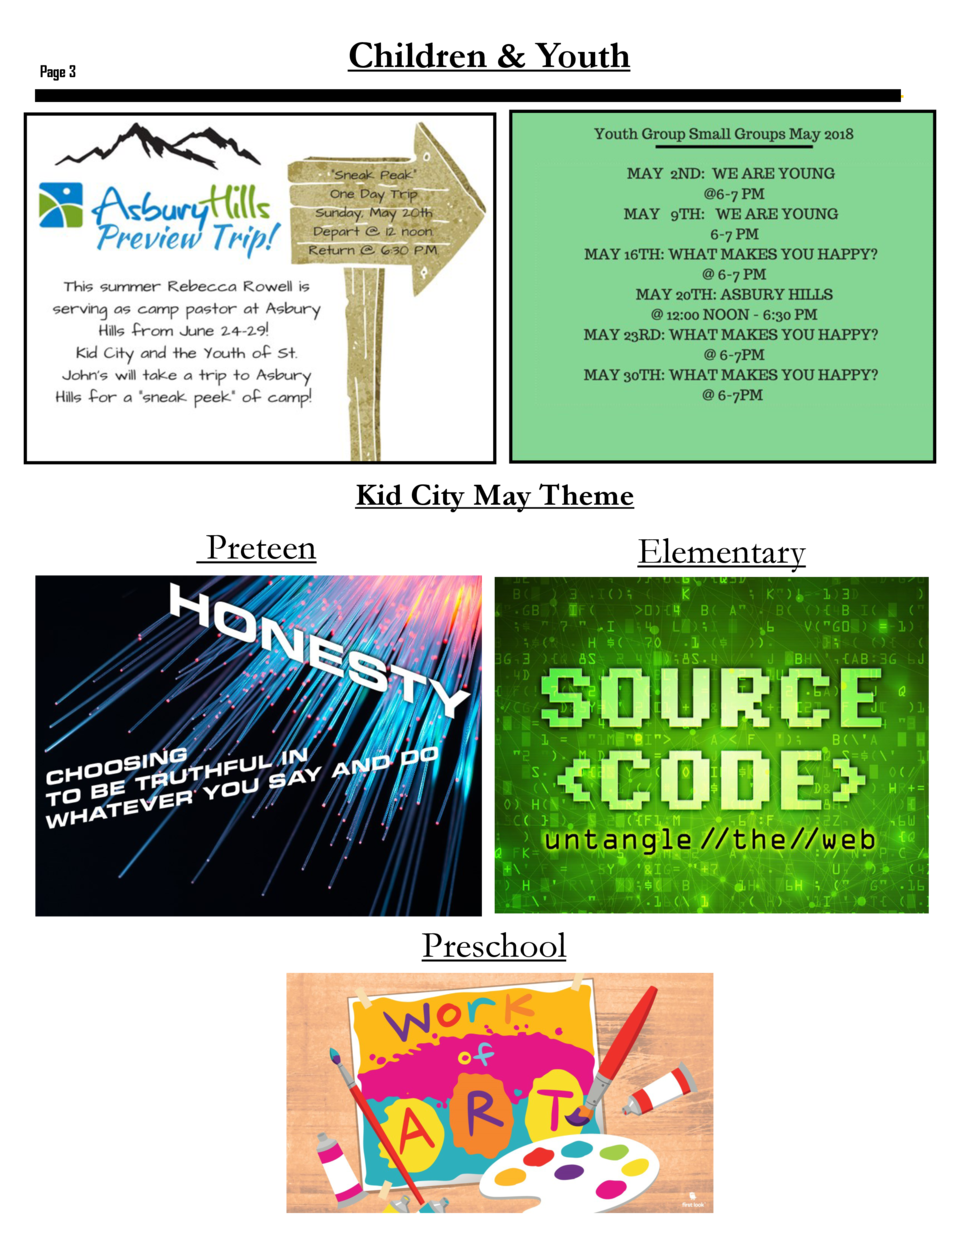 Children   Youth  Page 3  Kid City May Theme  Preteen  Elementary  Preschool